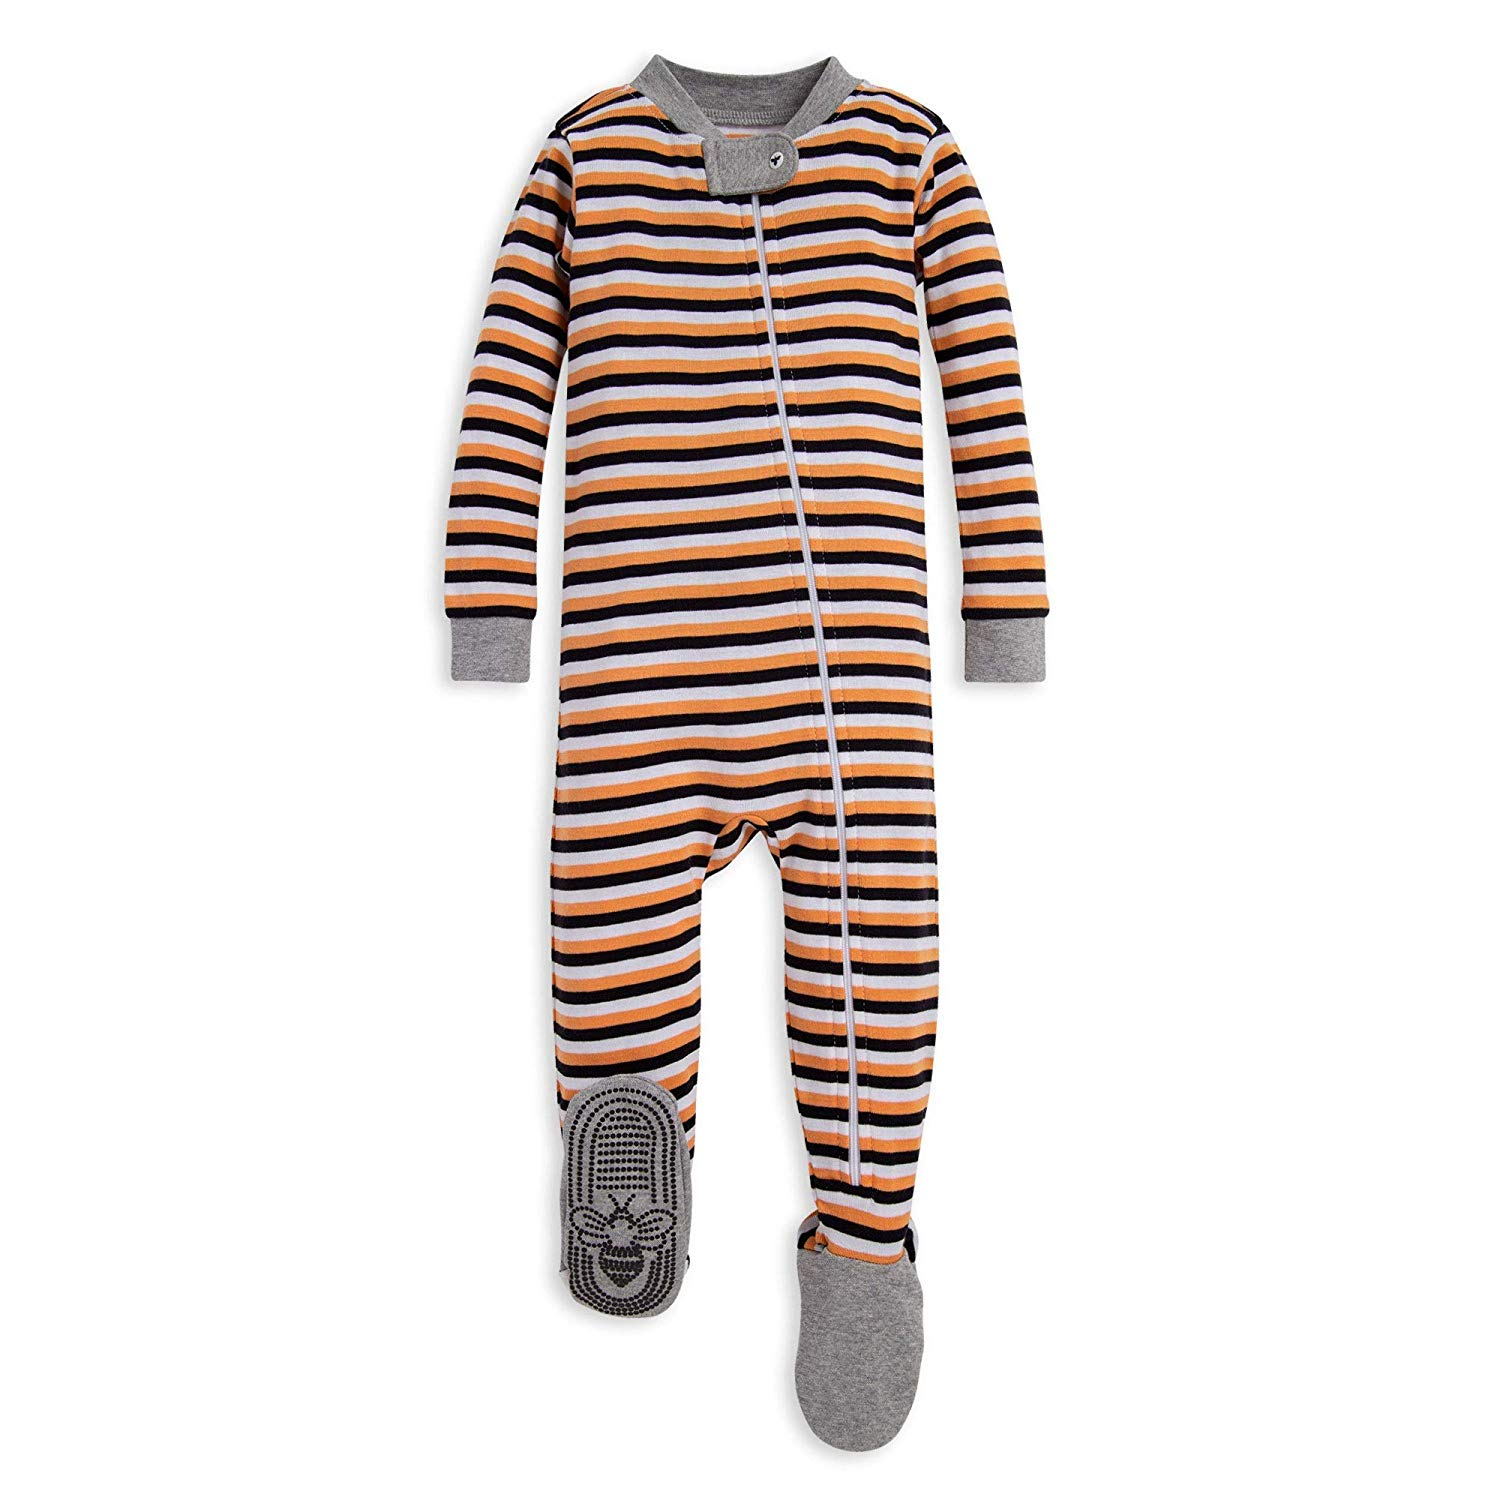 unisex tree pajamas